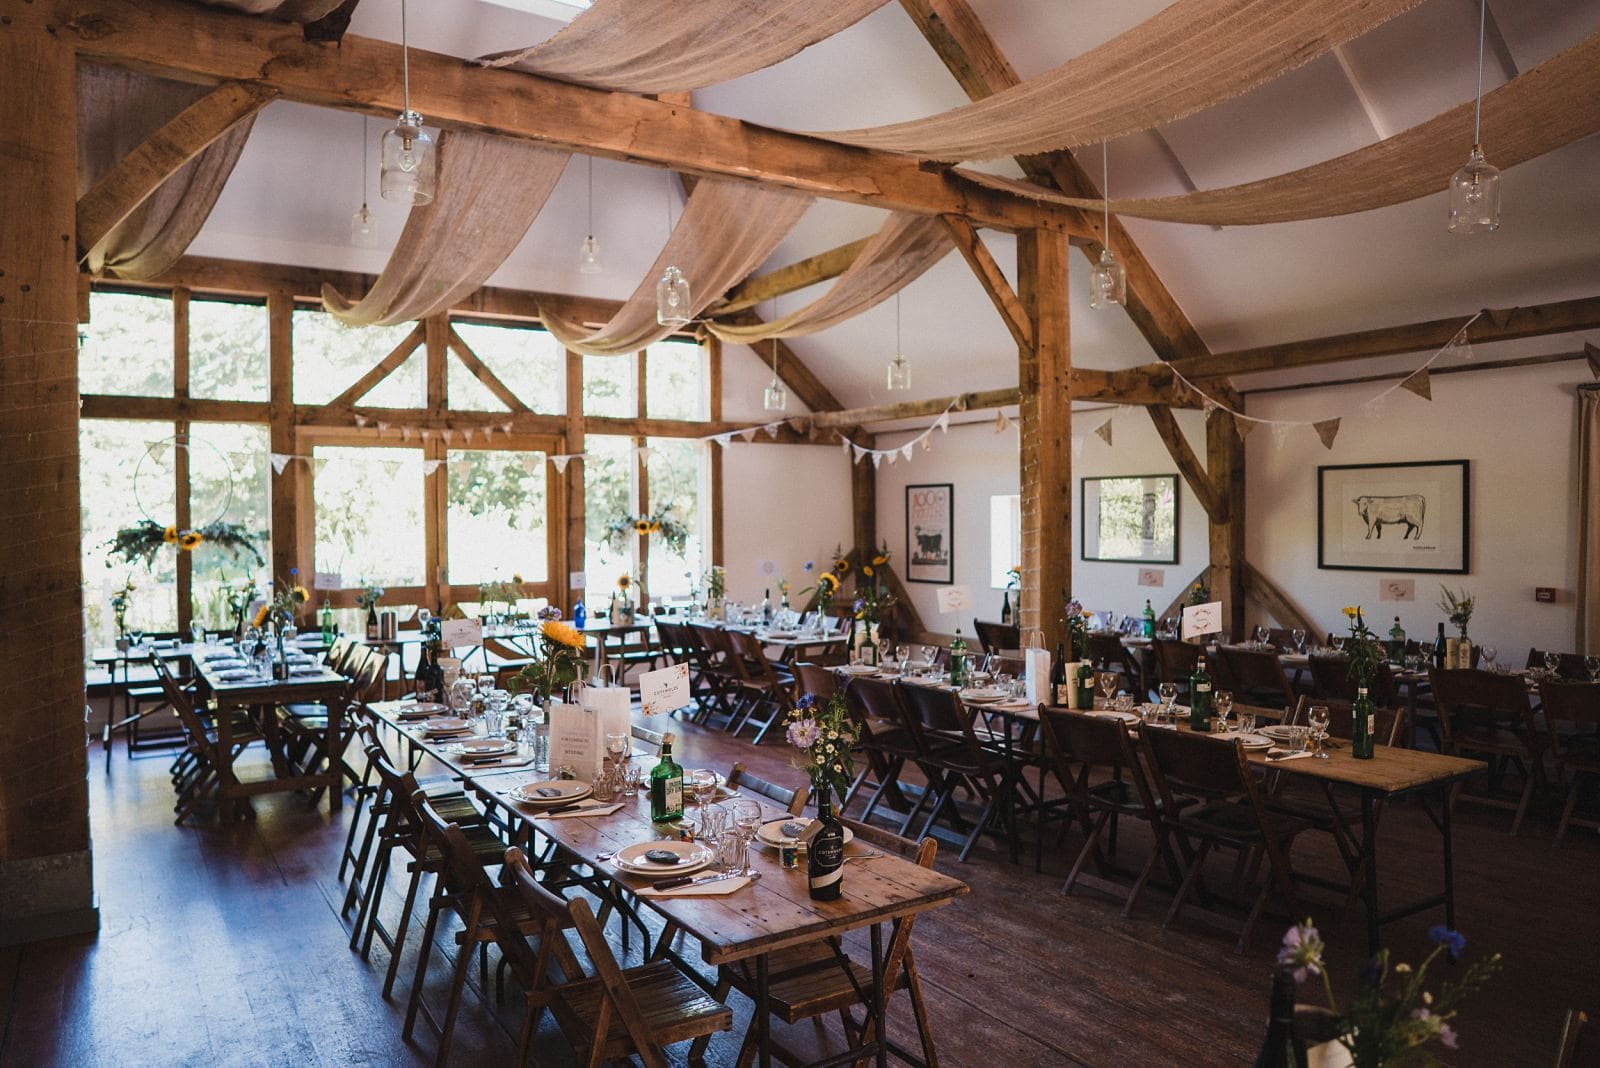 Nancarrow Farm's Oak Barn laid up with trestle tables for a wedding breakfast